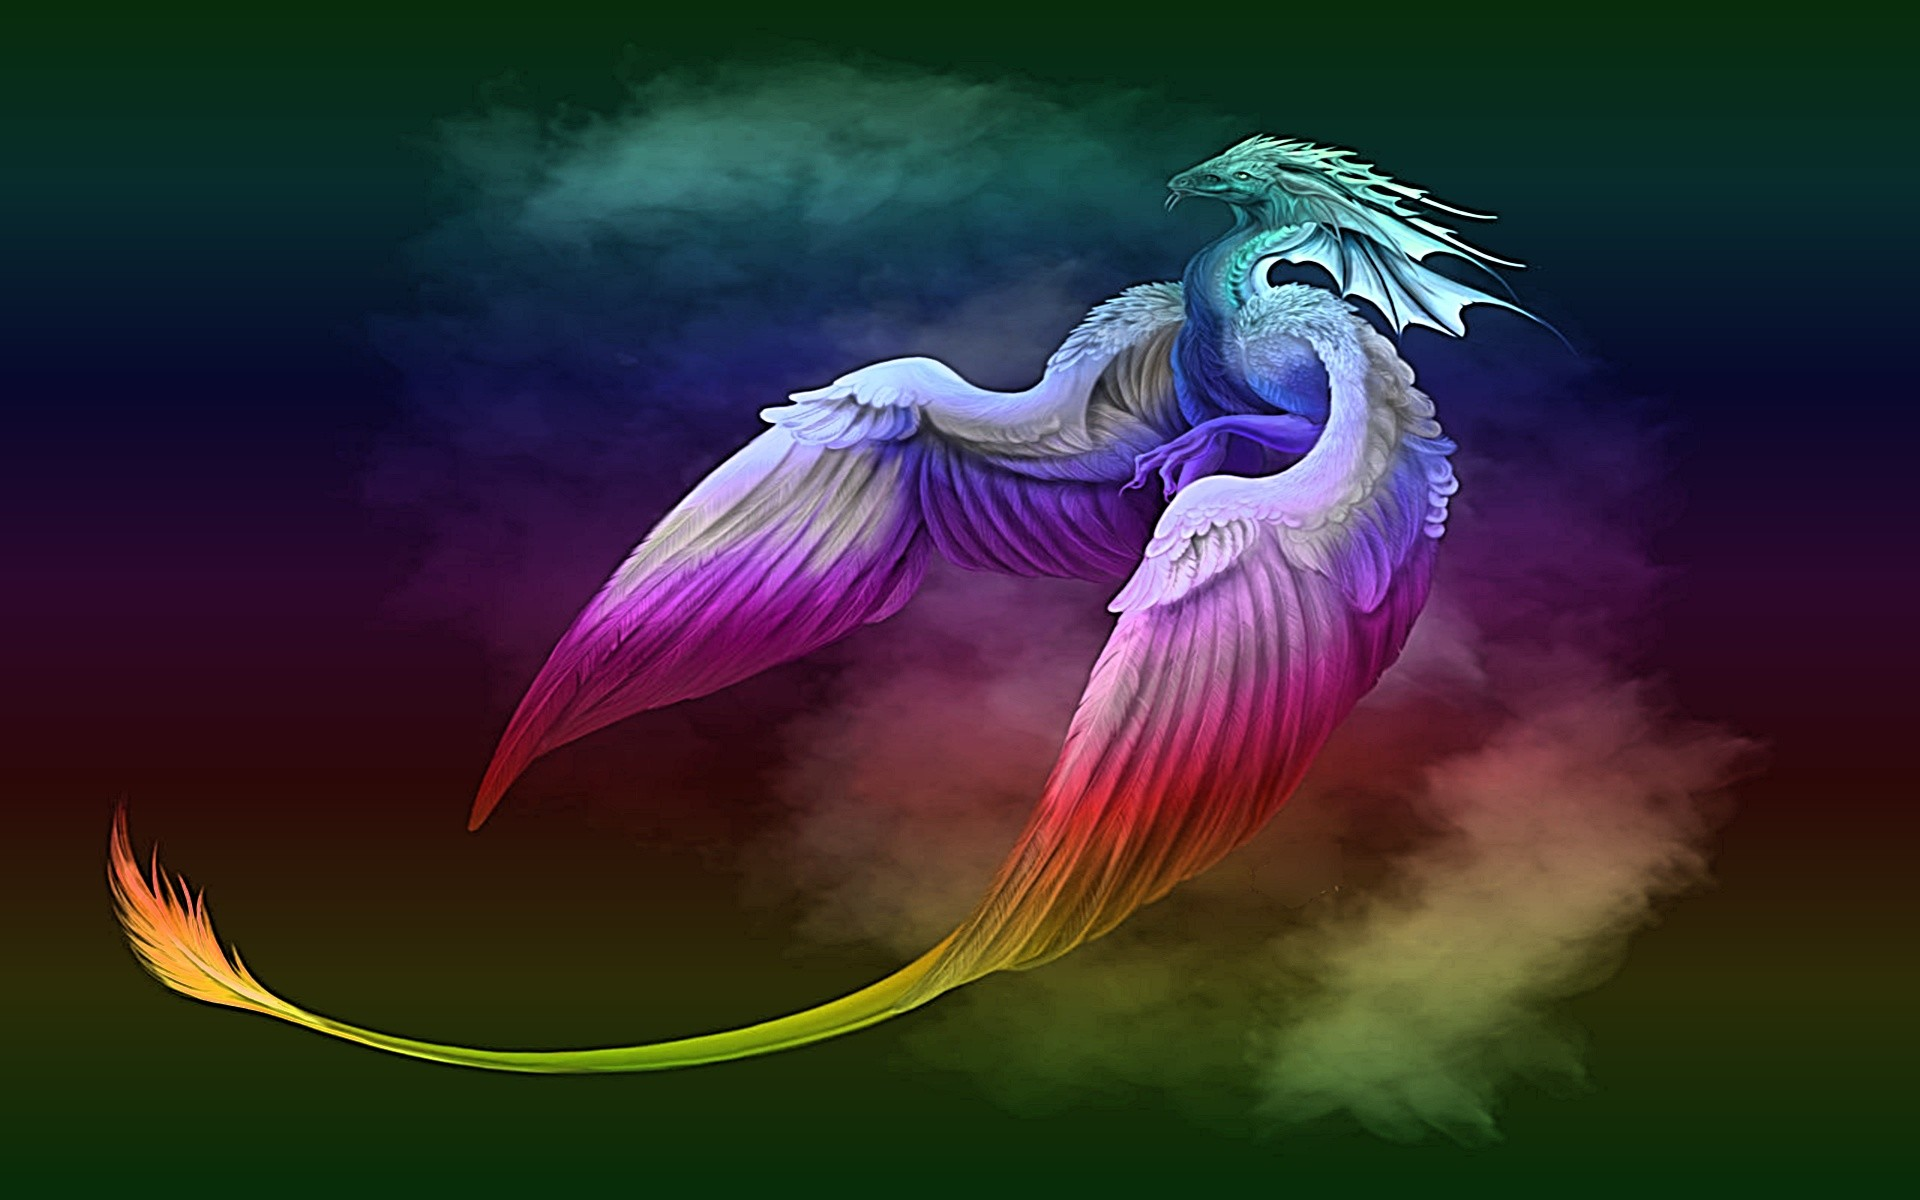 Cool dragons wallpaper 62 images - Dragon backgrounds ...